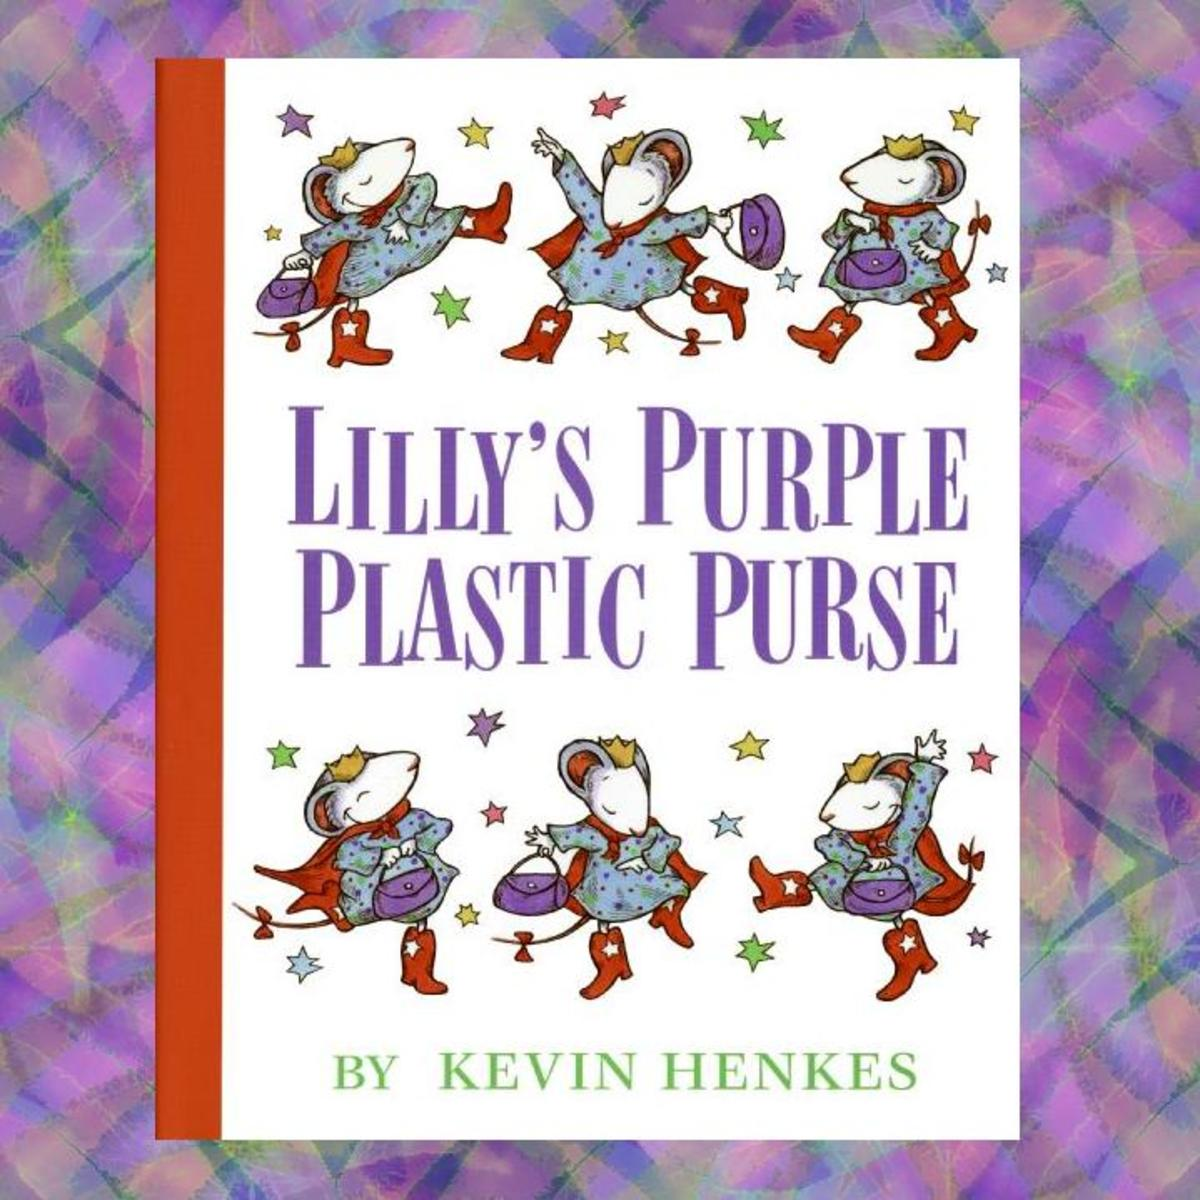 Lilly's Purple Plastic Purse by Kevin Henkes Children's Book Review